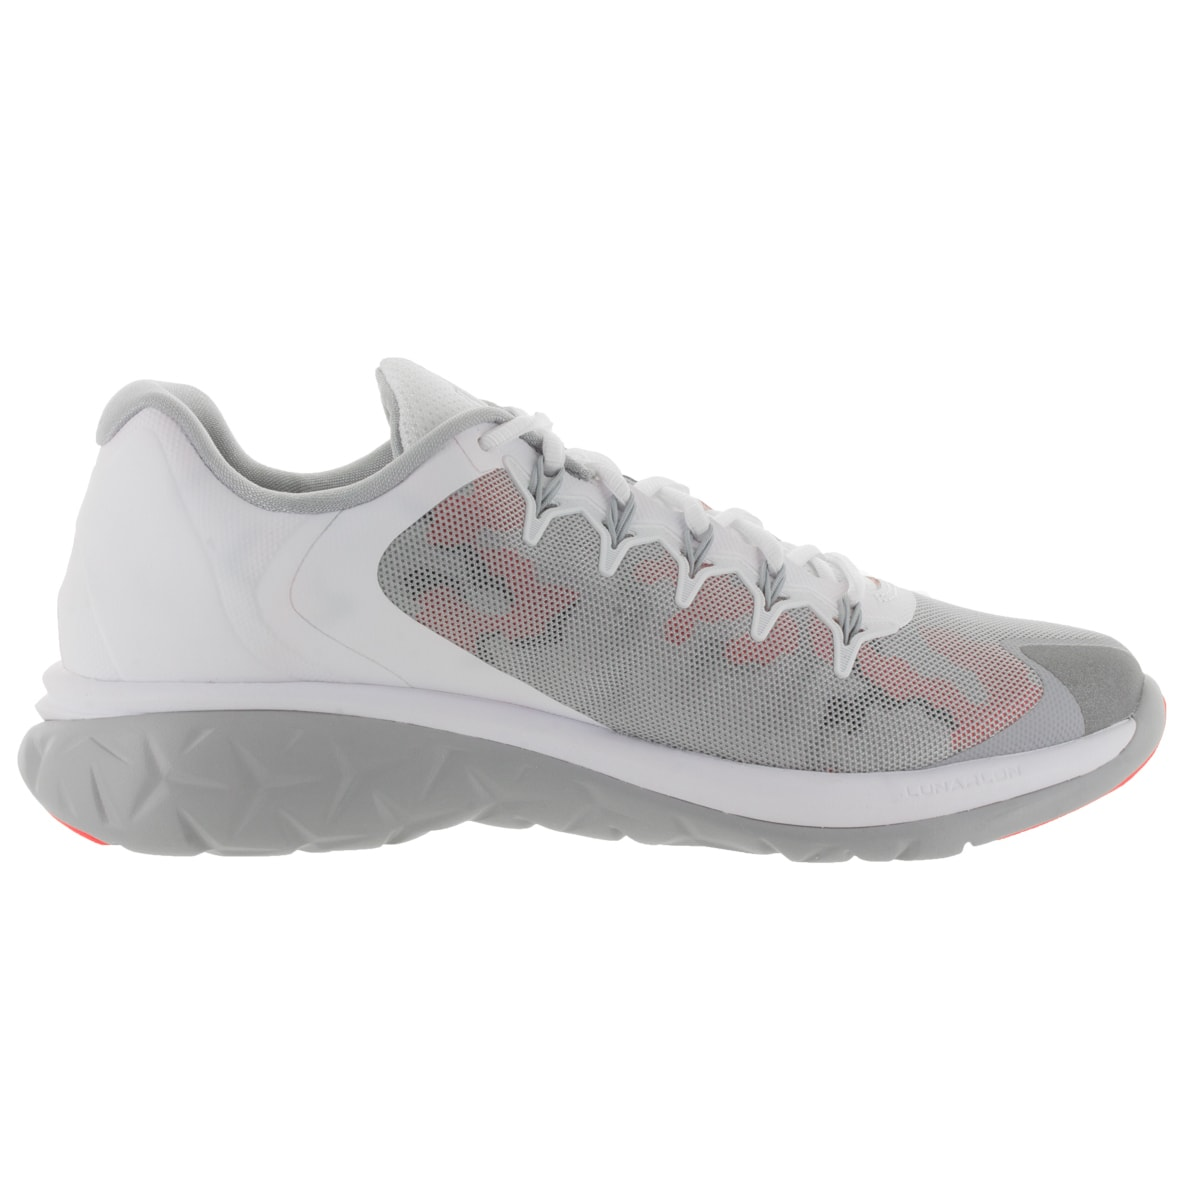 Jordan Men -  Jordan Flight Runner 2 Running Shoes in White/Wolf Grey/Infrared